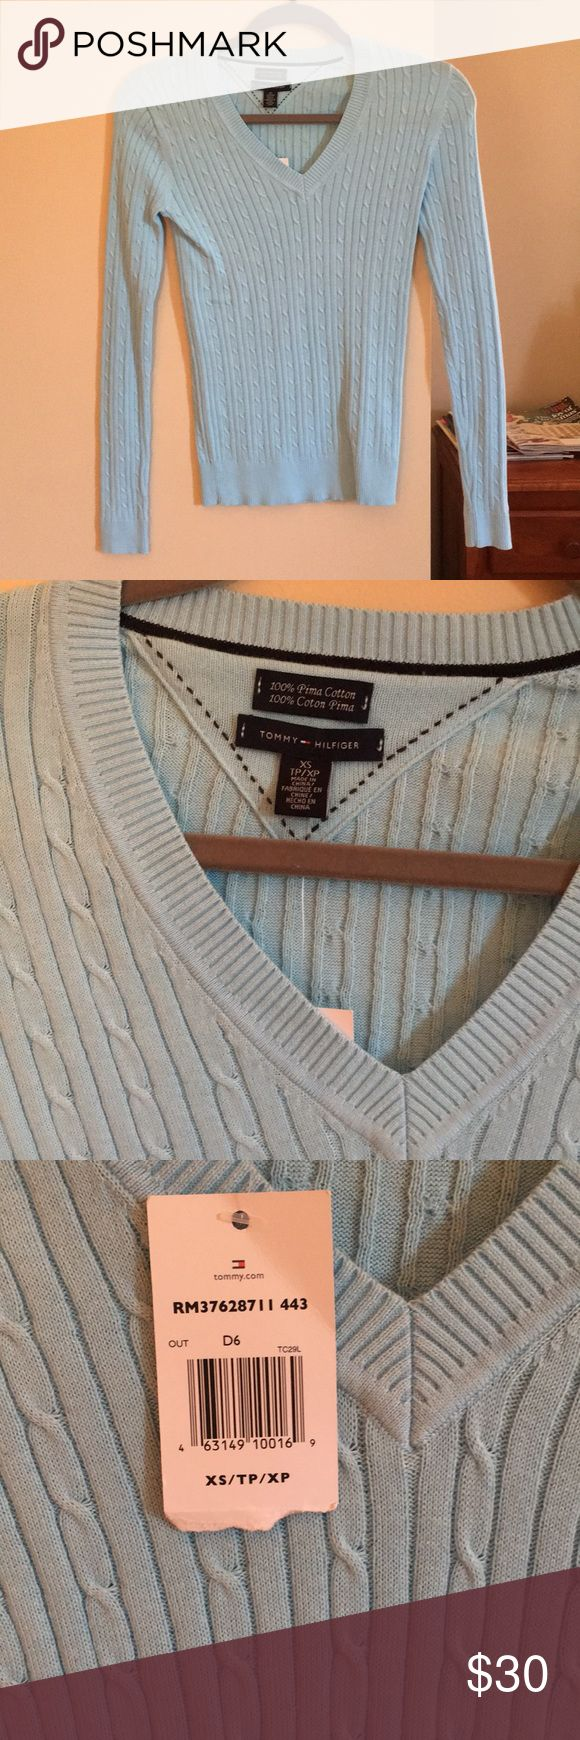 Tommy Hilfiger NWT light blue sweater NWT v-neck Tommy Hilfiger cable knit sweater. Beautiful light blue color. 100% prima cotton. Would make an excellent Christmas gift! Tommy Hilfiger Sweaters V-Necks